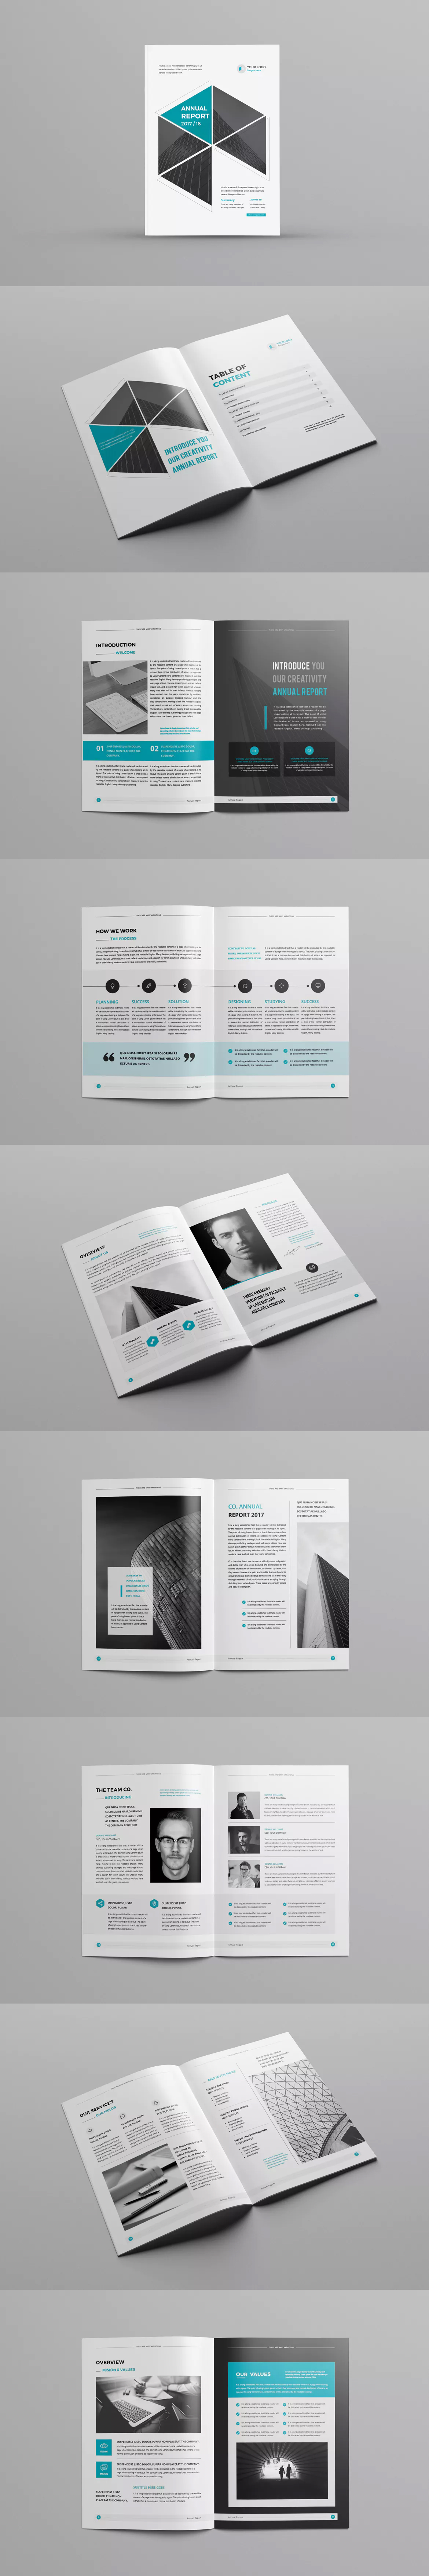 Annual Report Logo Template InDesign INDD - A4 | Annual Report ...